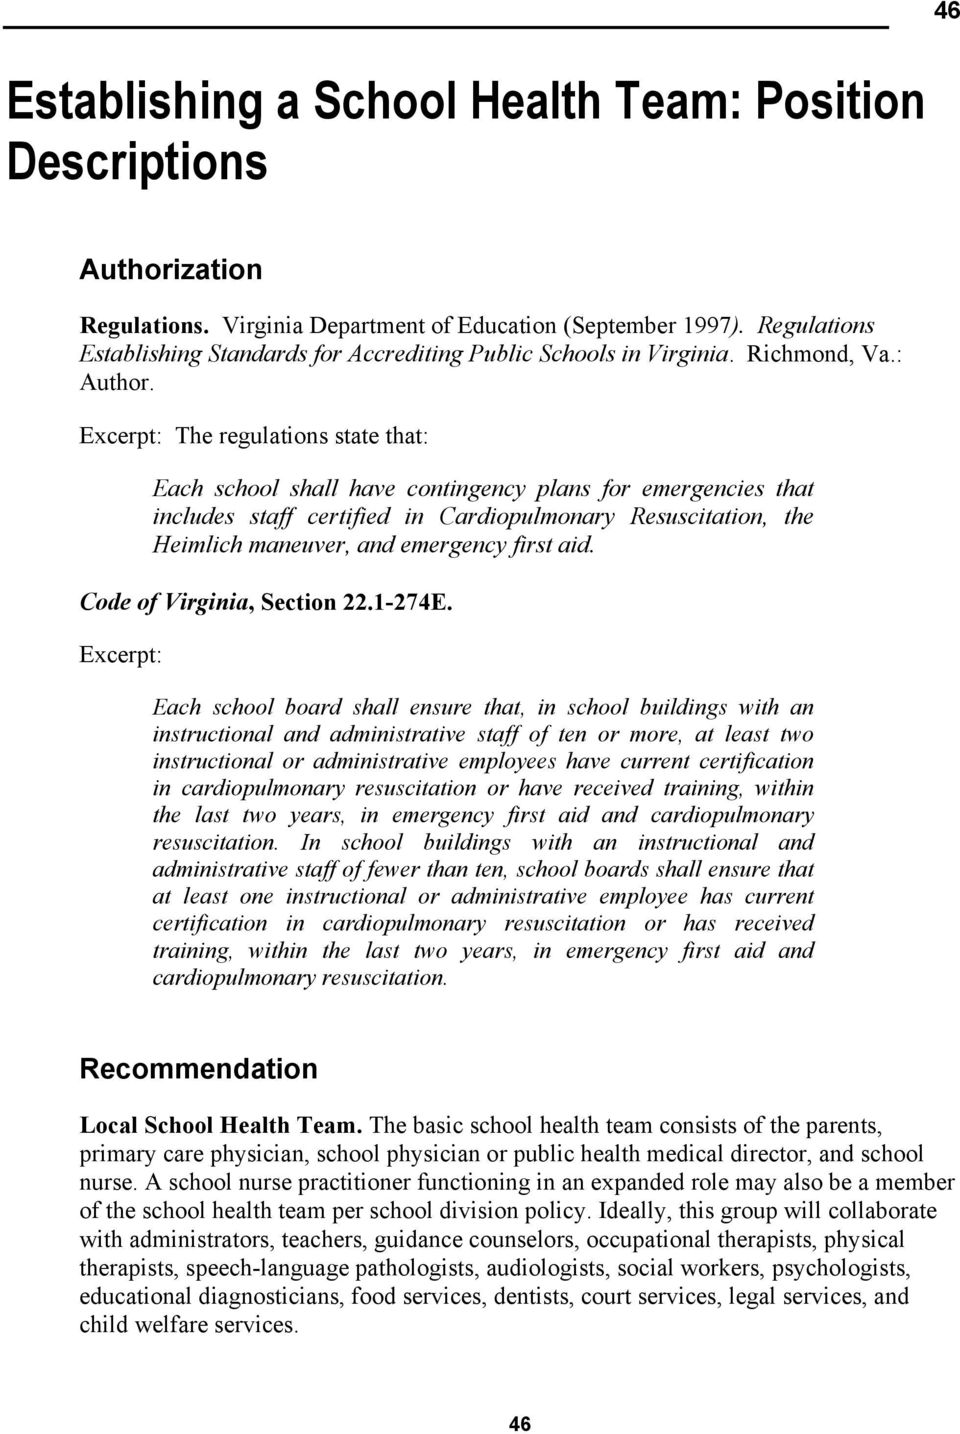 Excerpt: The regulations state that: Each school shall have contingency plans for emergencies that includes staff certified in Cardiopulmonary Resuscitation, the Heimlich maneuver, and emergency